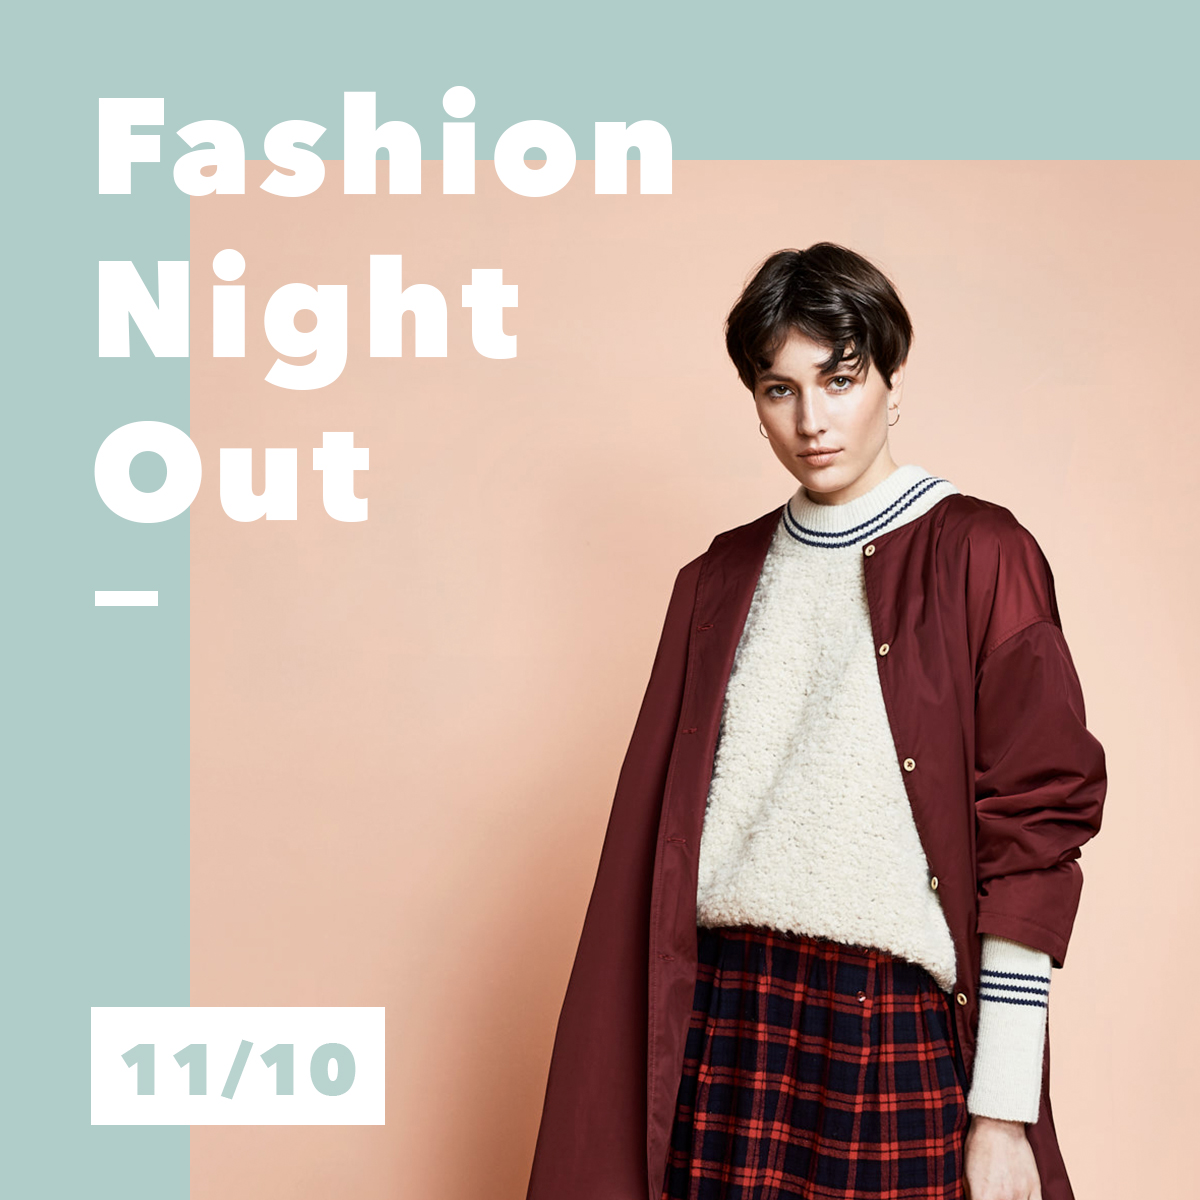 KAR_Fashion_Night_Out_instagram.jpg